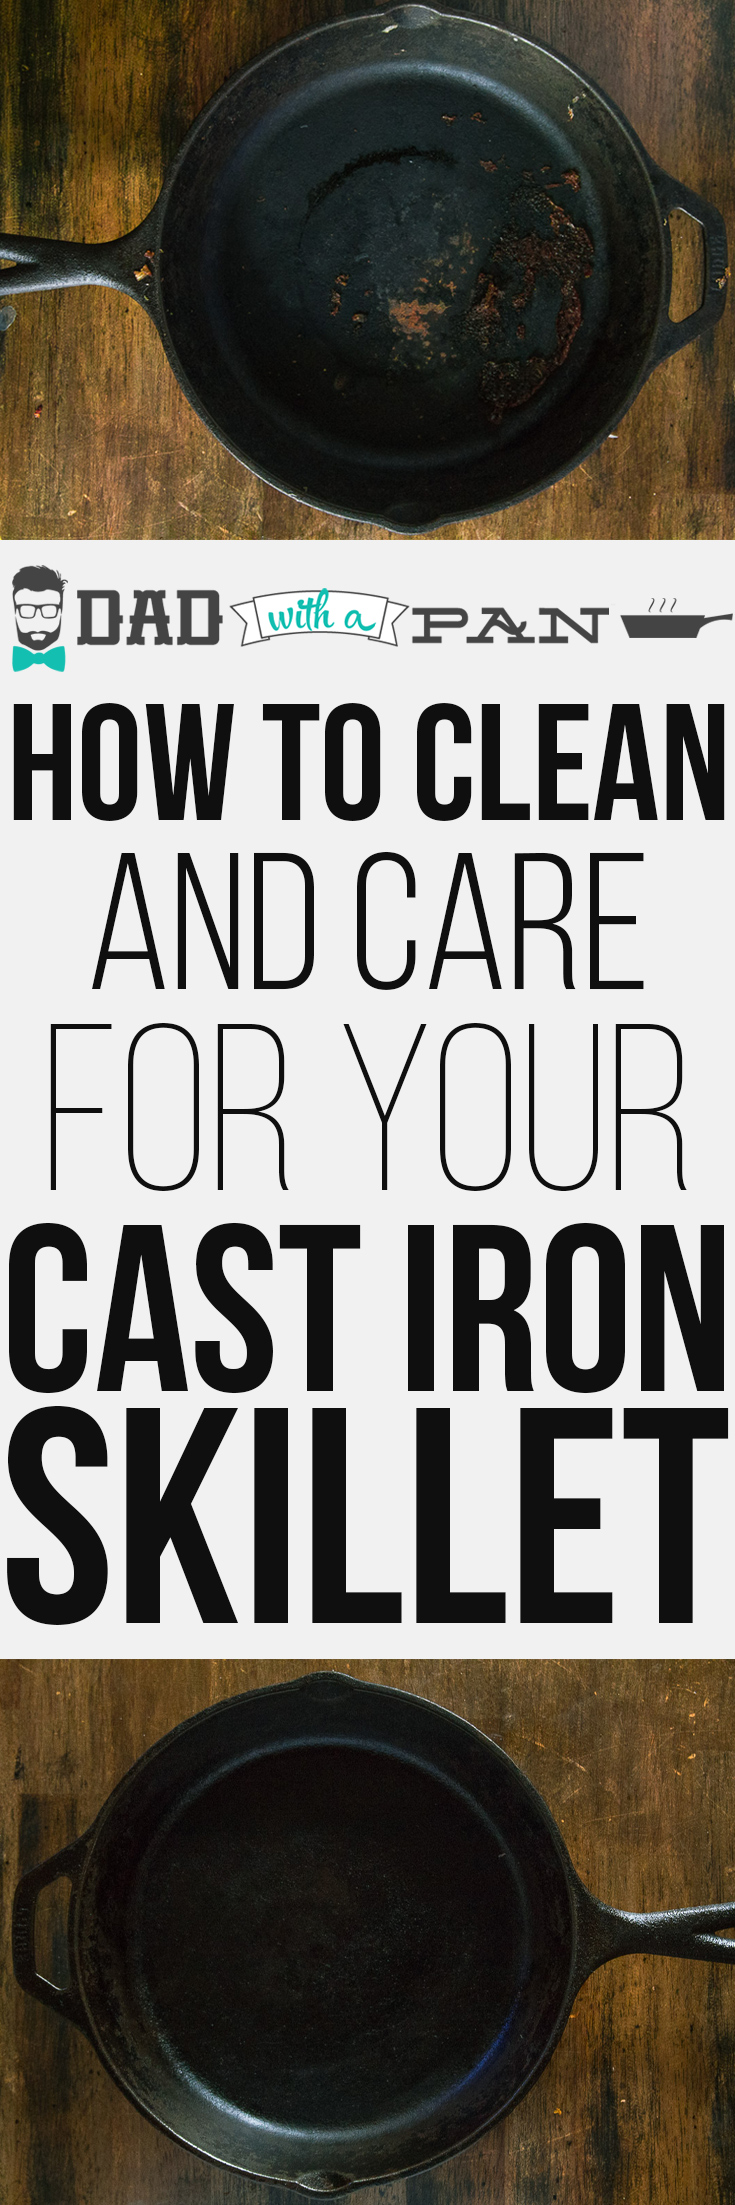 How-To-Clean-And-Care-For-Your-Cast-Iron-Skillet-pinterest